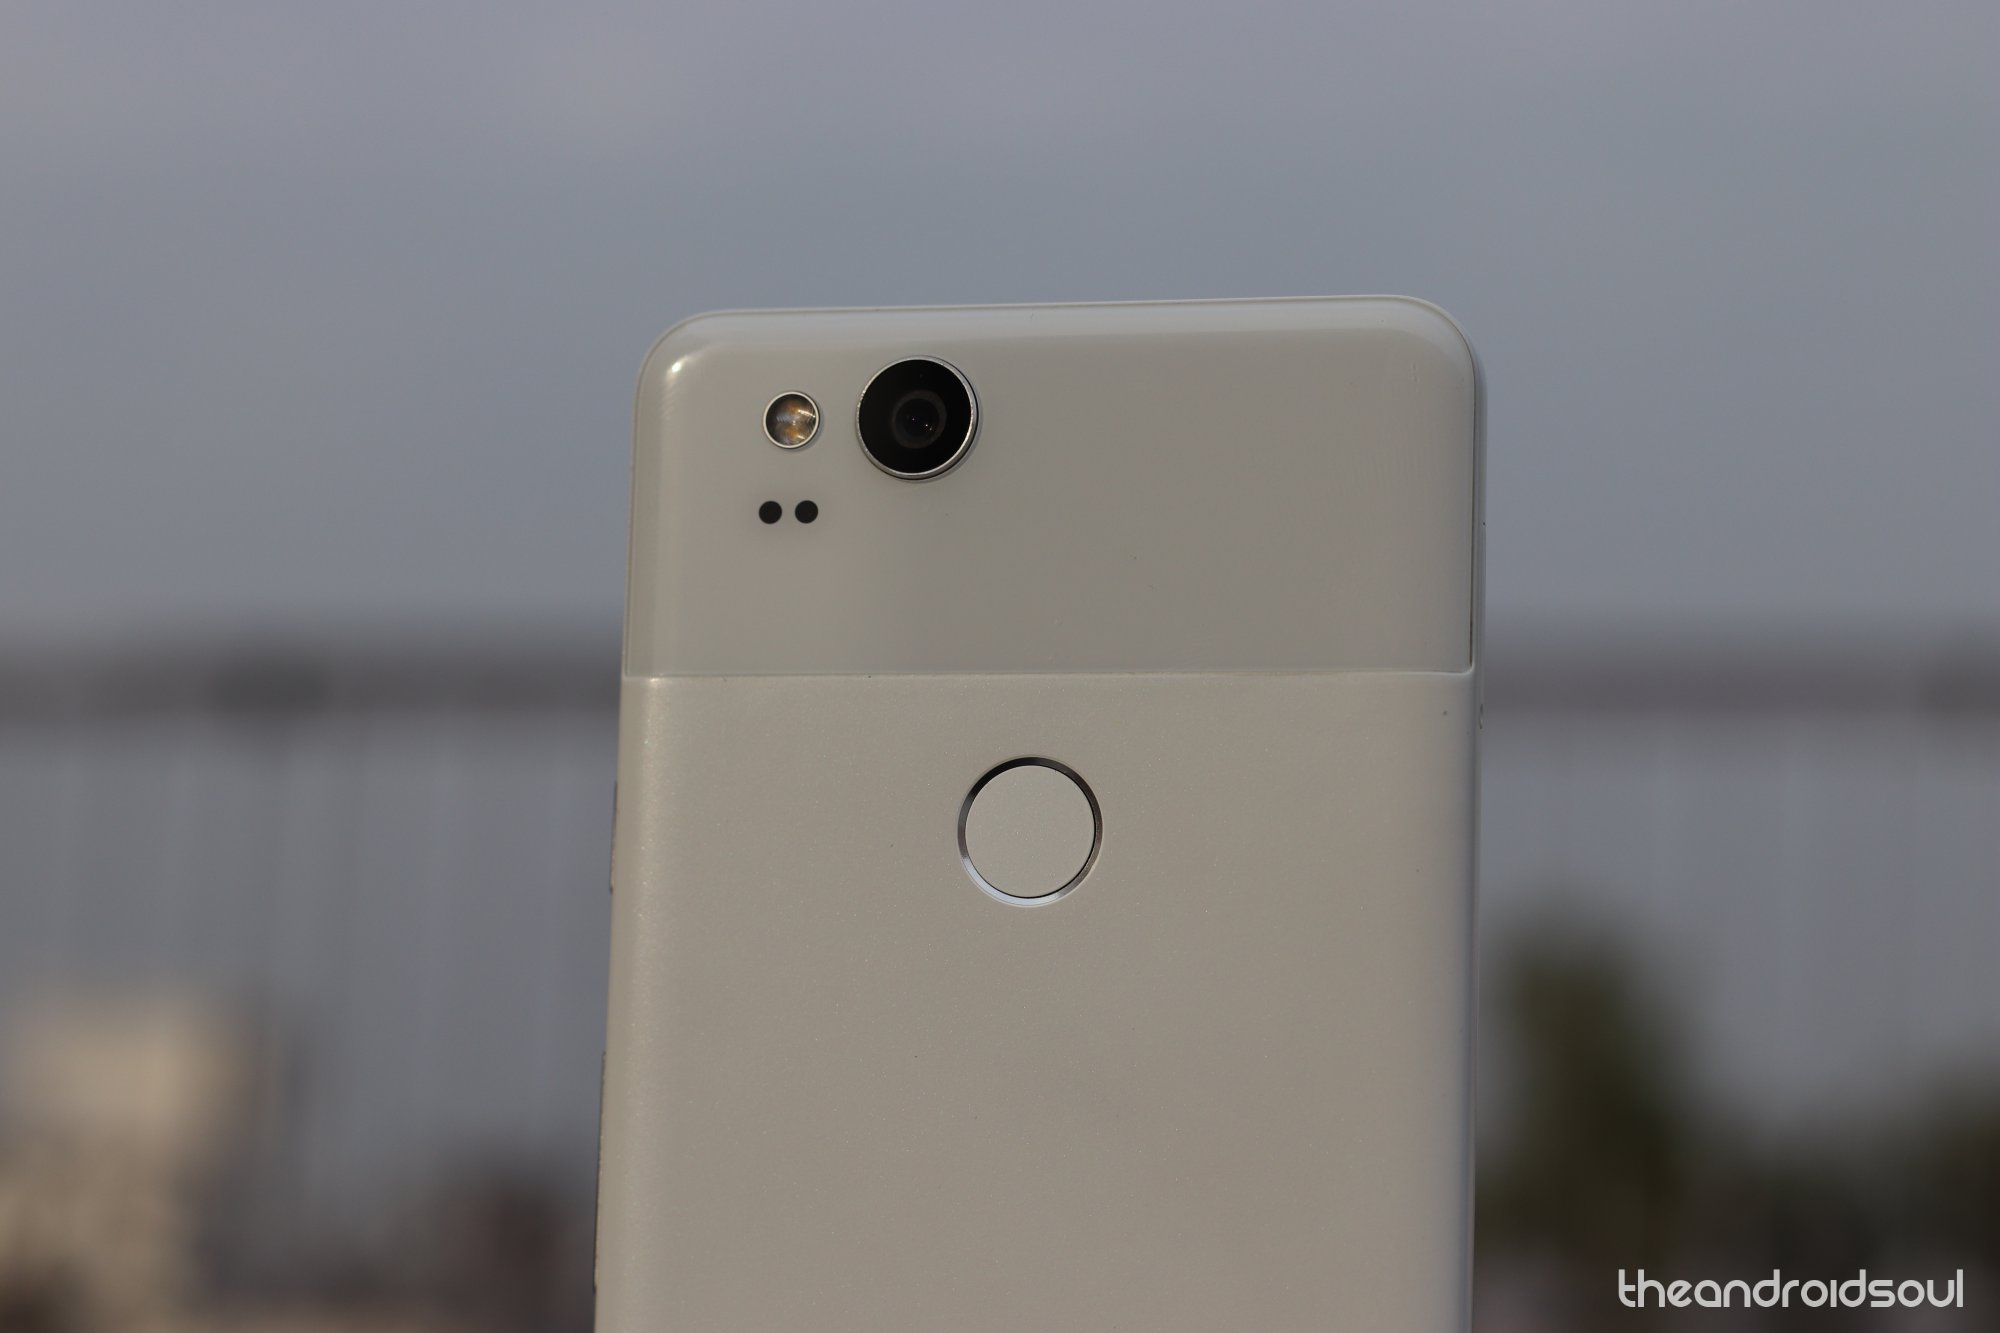 The September patch security update is now available for all the Pixel handsets at Verizon The Pixel and Pixel 2 are still one of the best Verizon phones